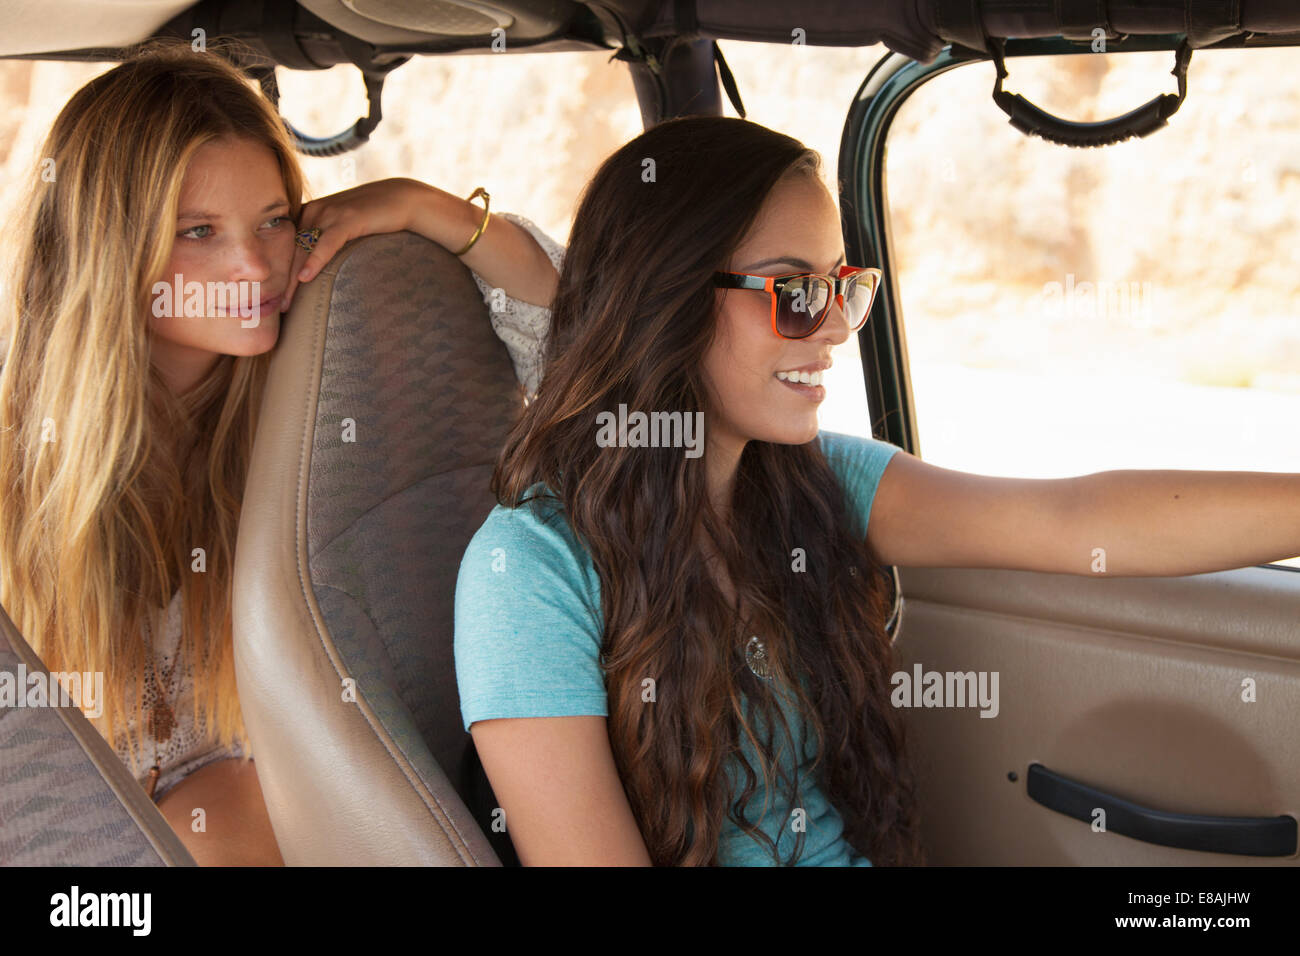 Two young women traveling in car - Stock Image